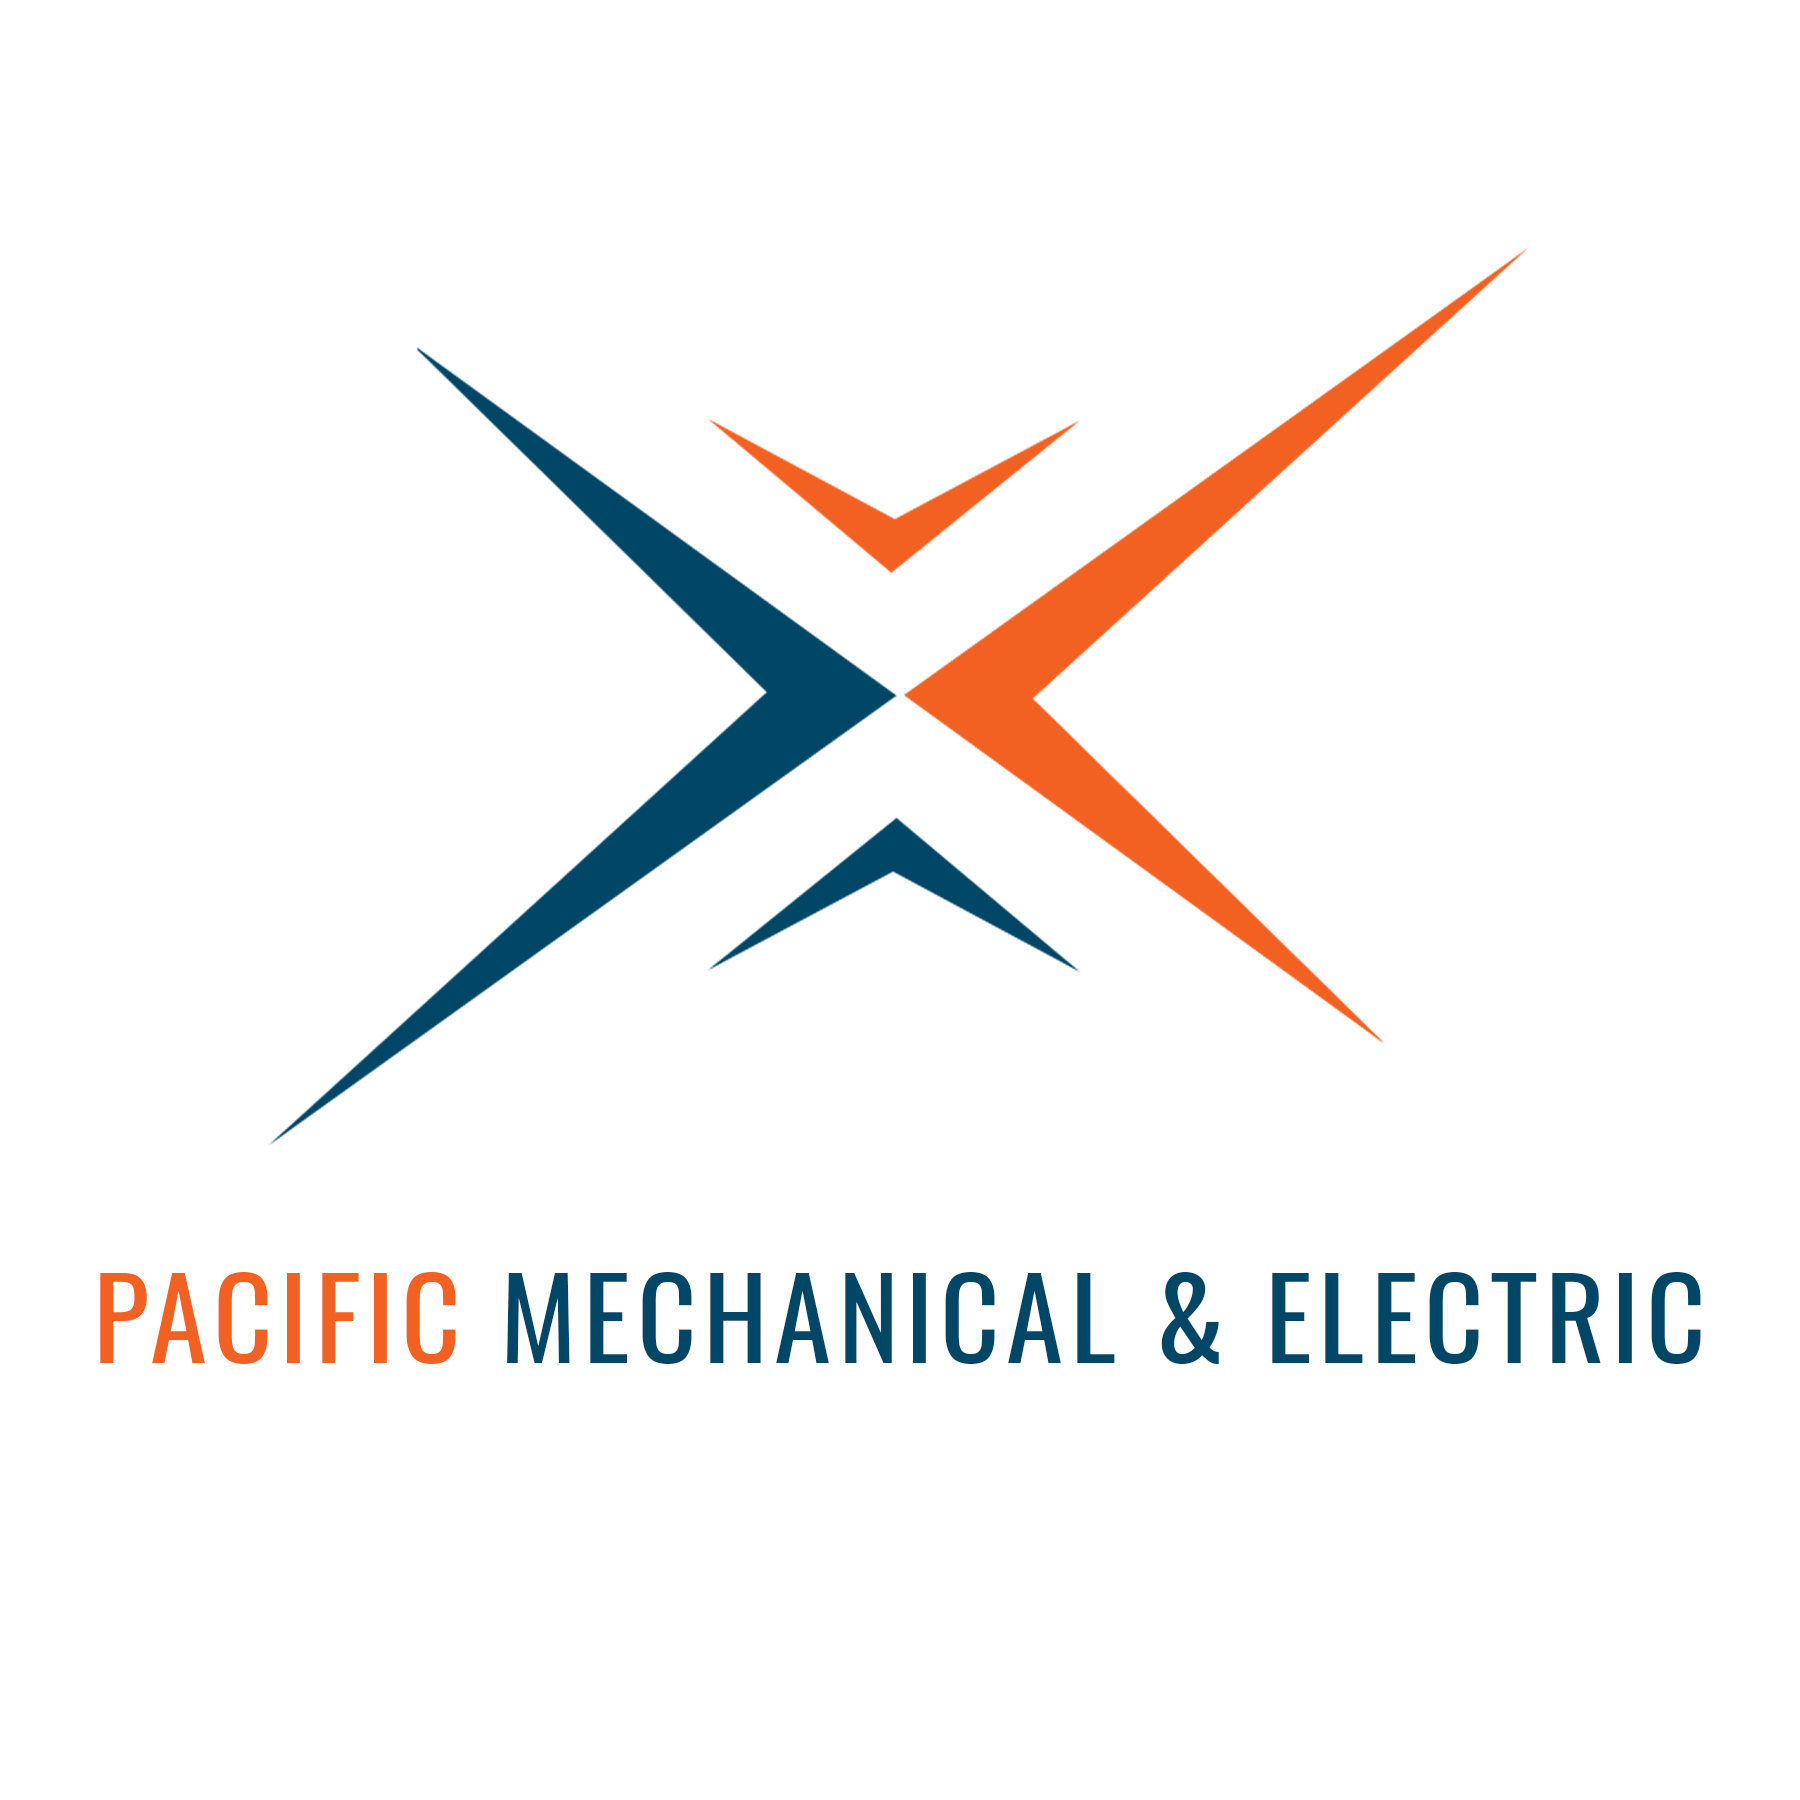 Pacific Mechanical & Electric